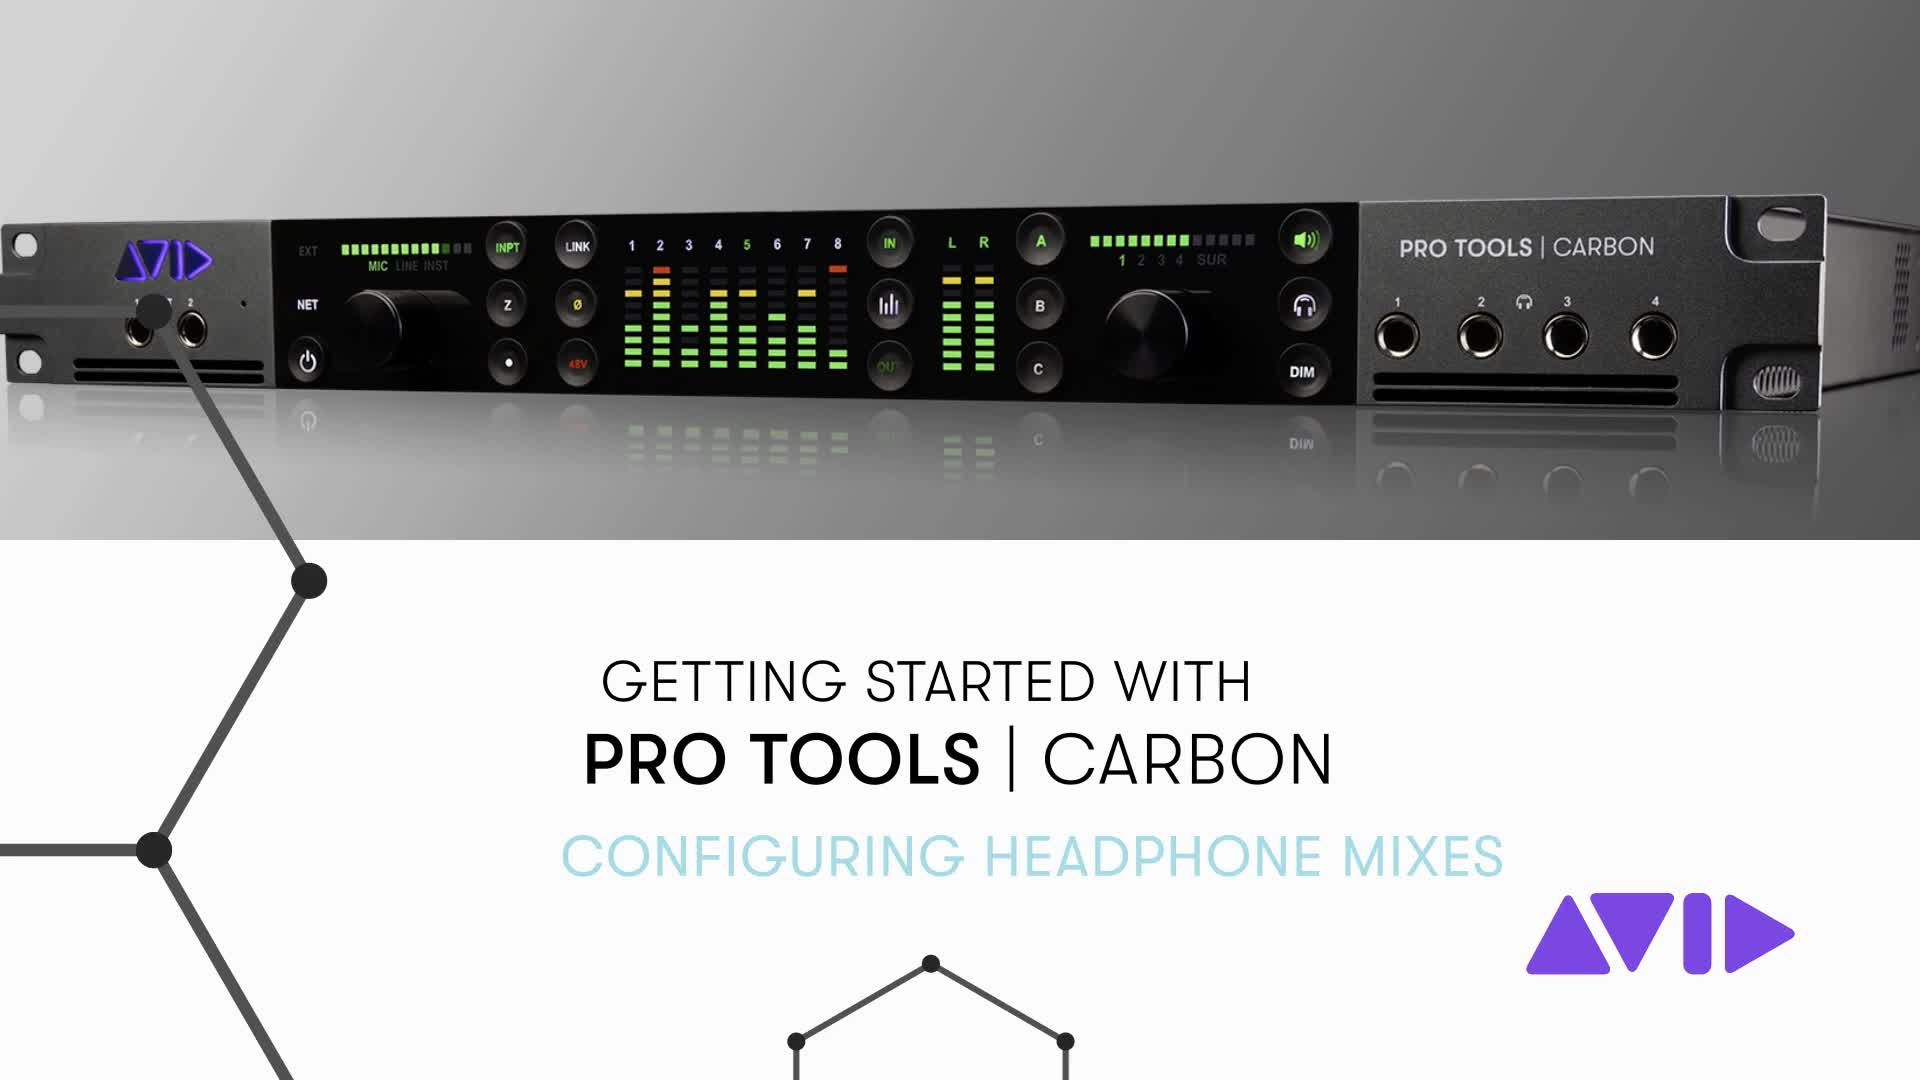 06 Pro Tools Carbon Getting Started - Configuring Headphone Mixes